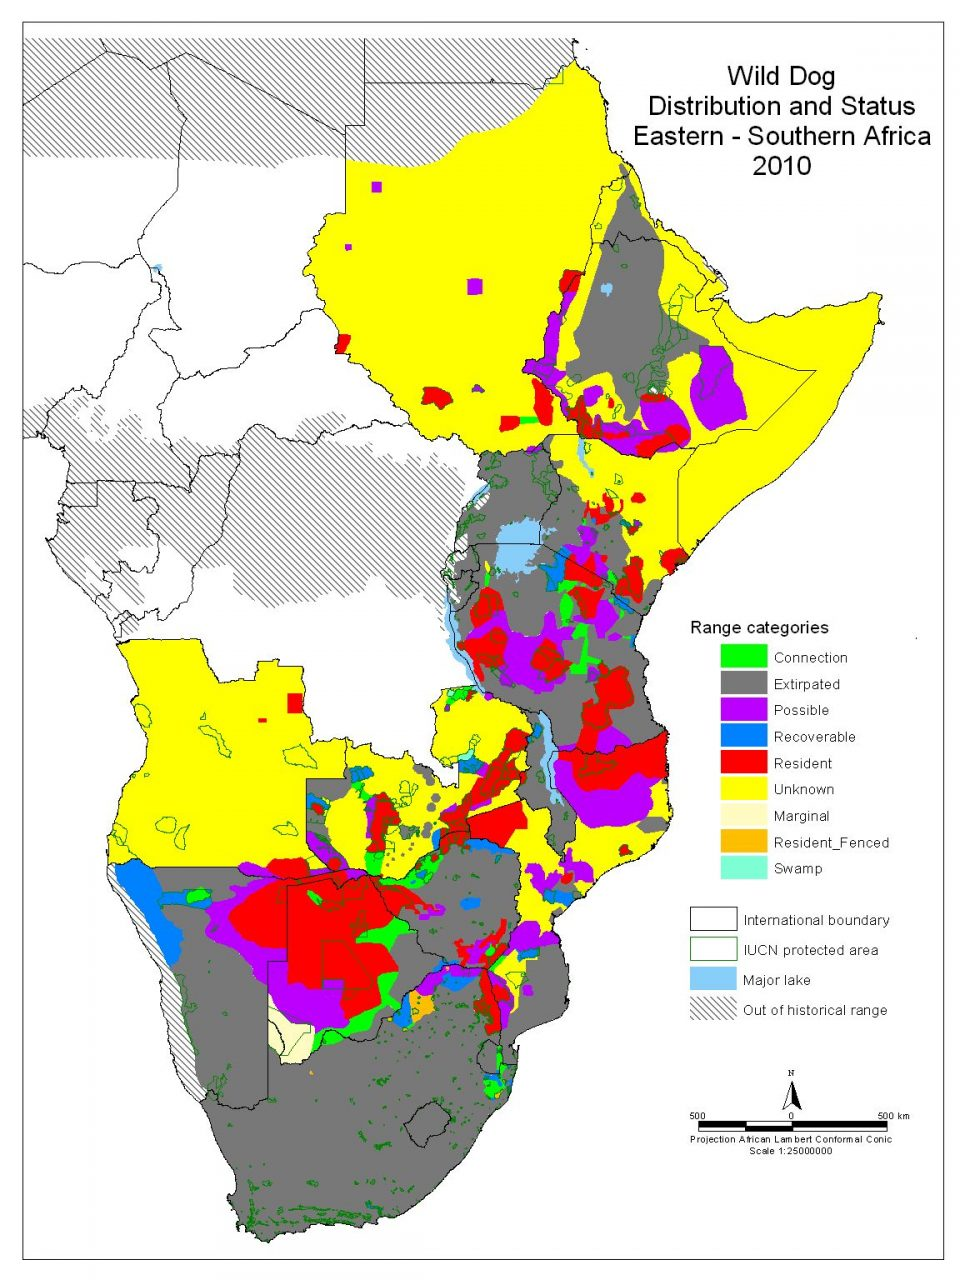 Wild dog Distribution in 2010